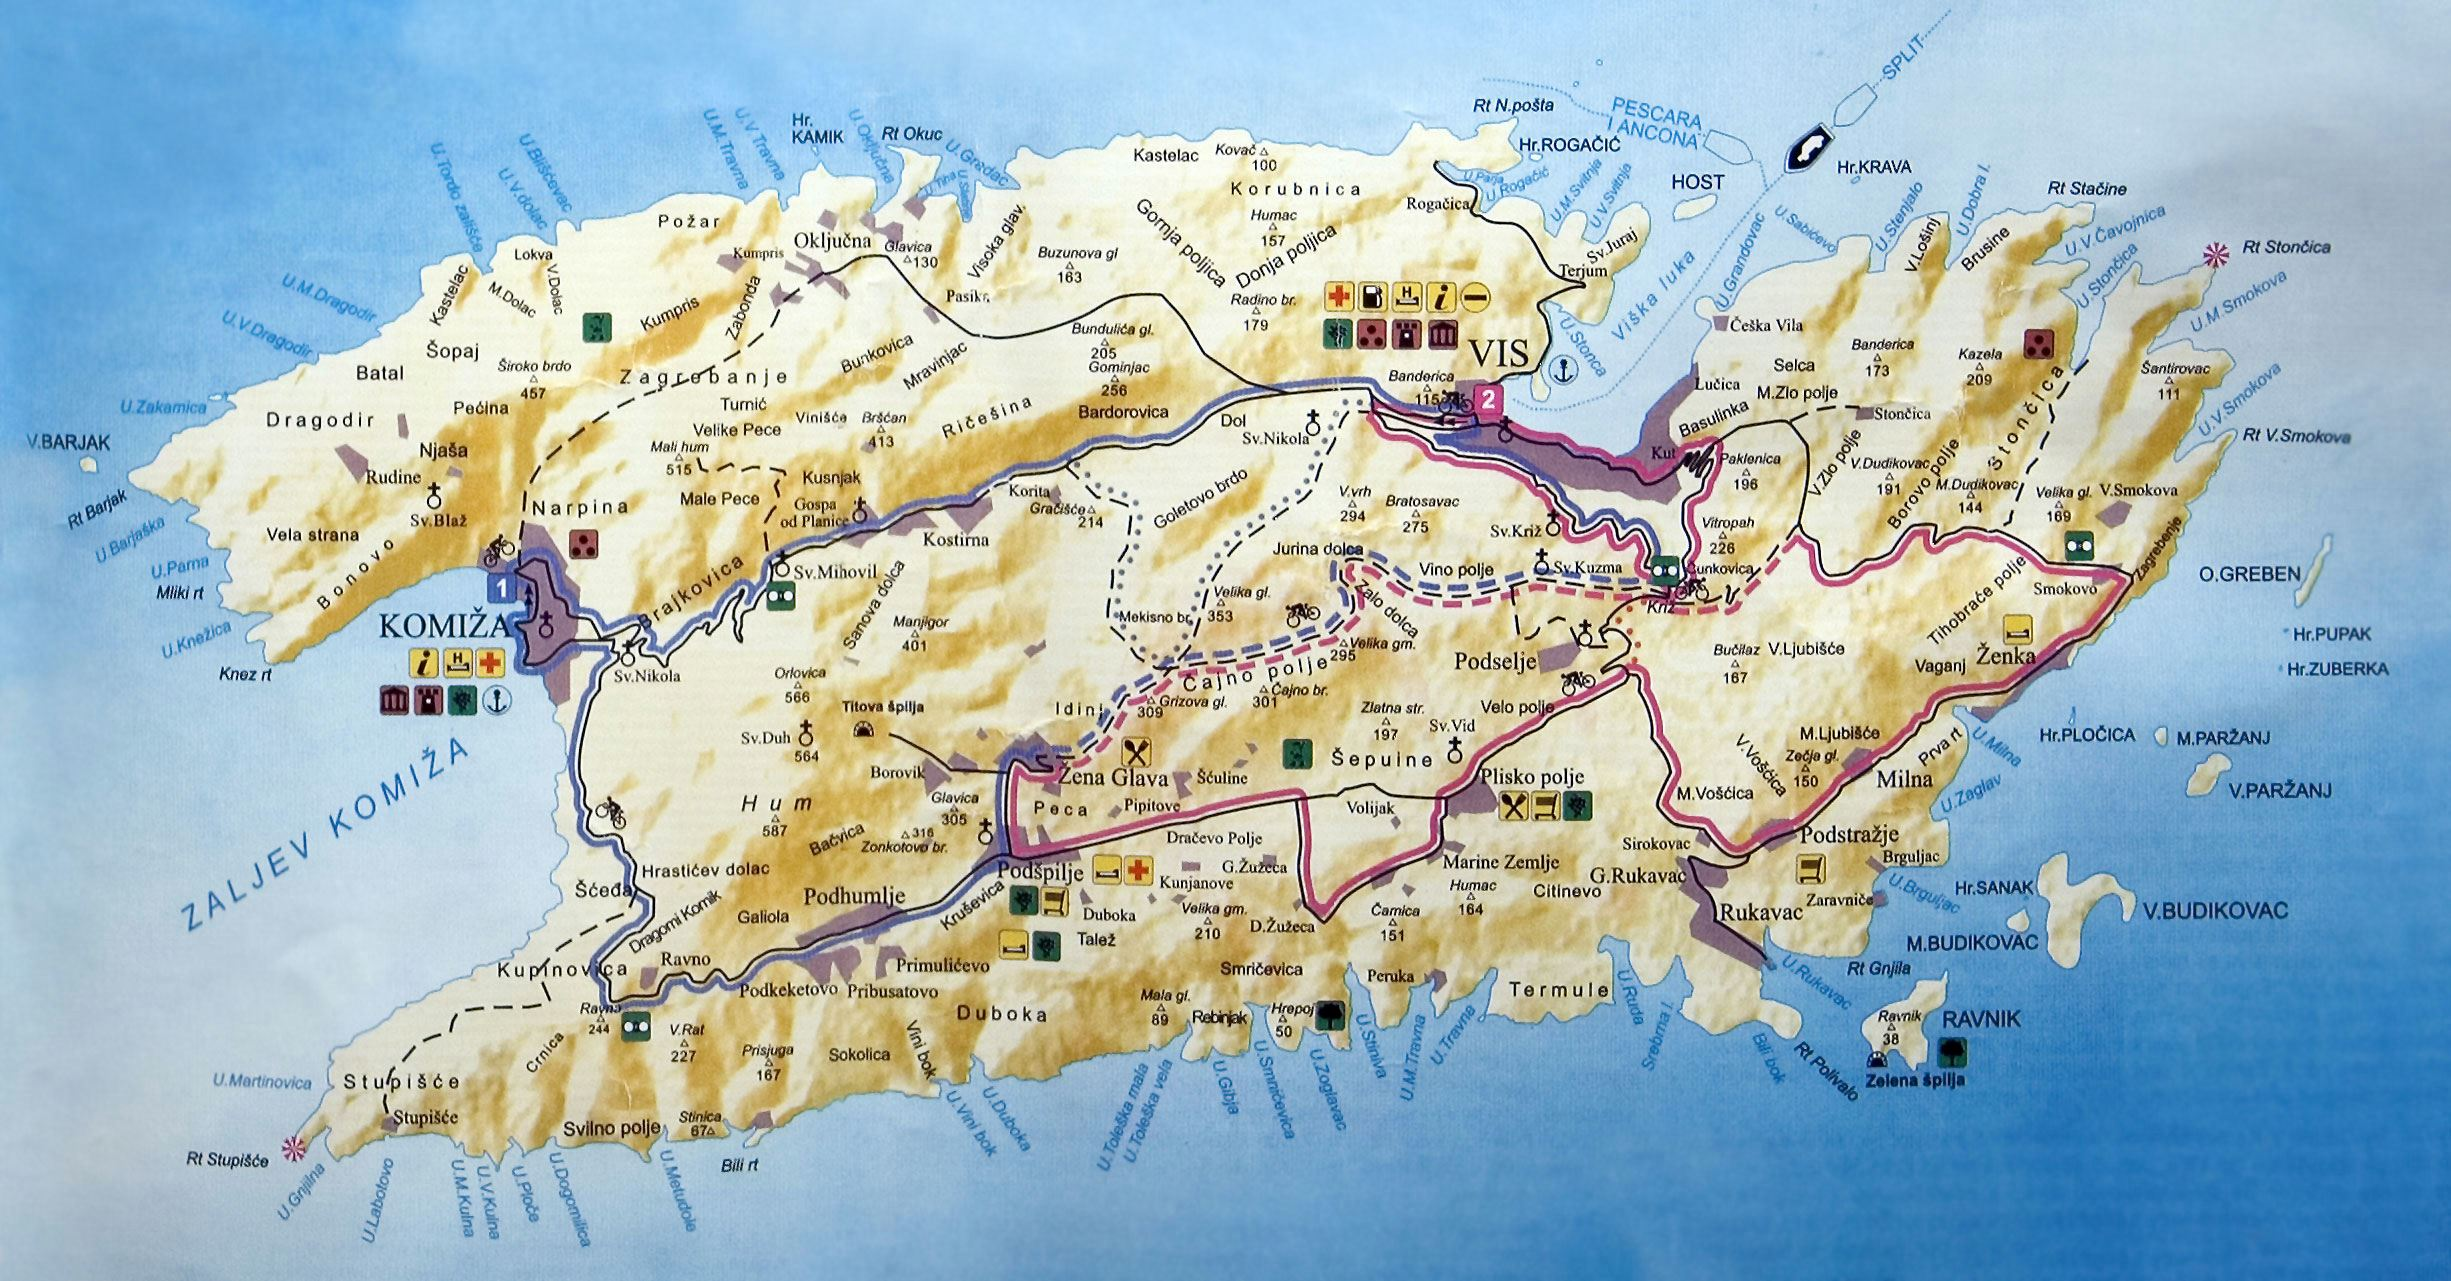 Vis Island Map Large Vis Island Maps for Free Download and Print | High